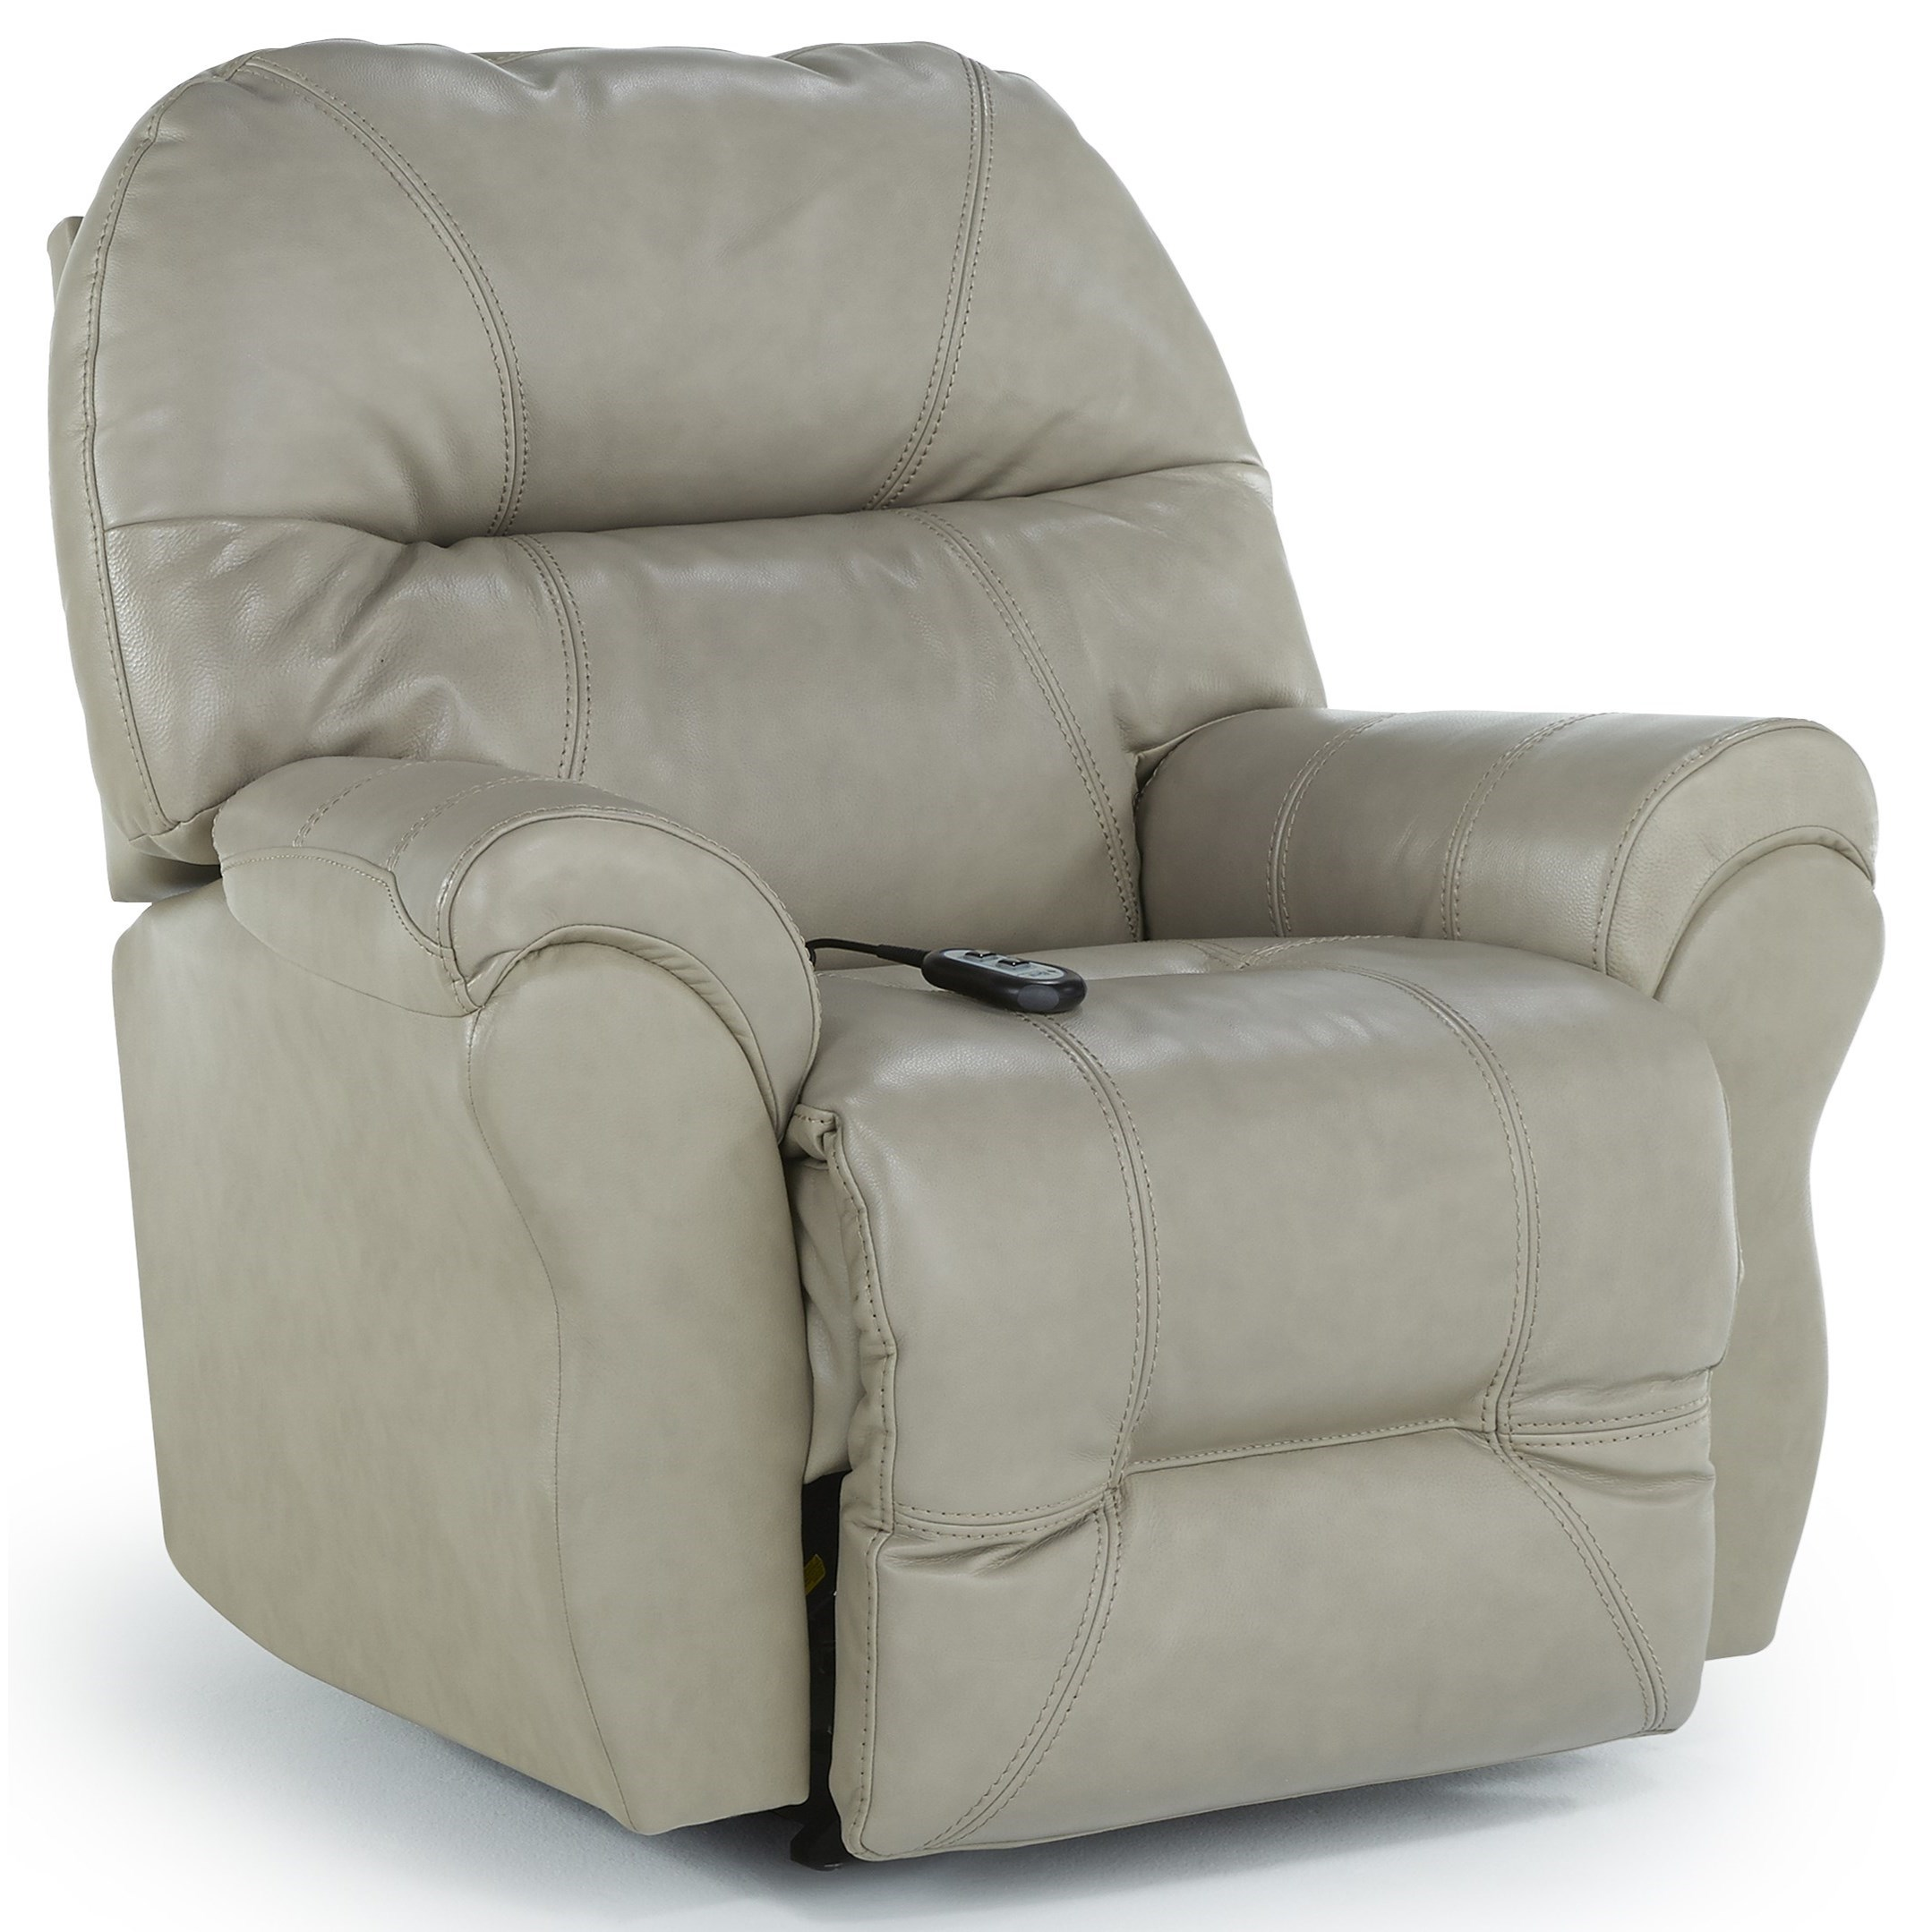 Bodie Recliner by Best Home Furnishings at Baer's Furniture